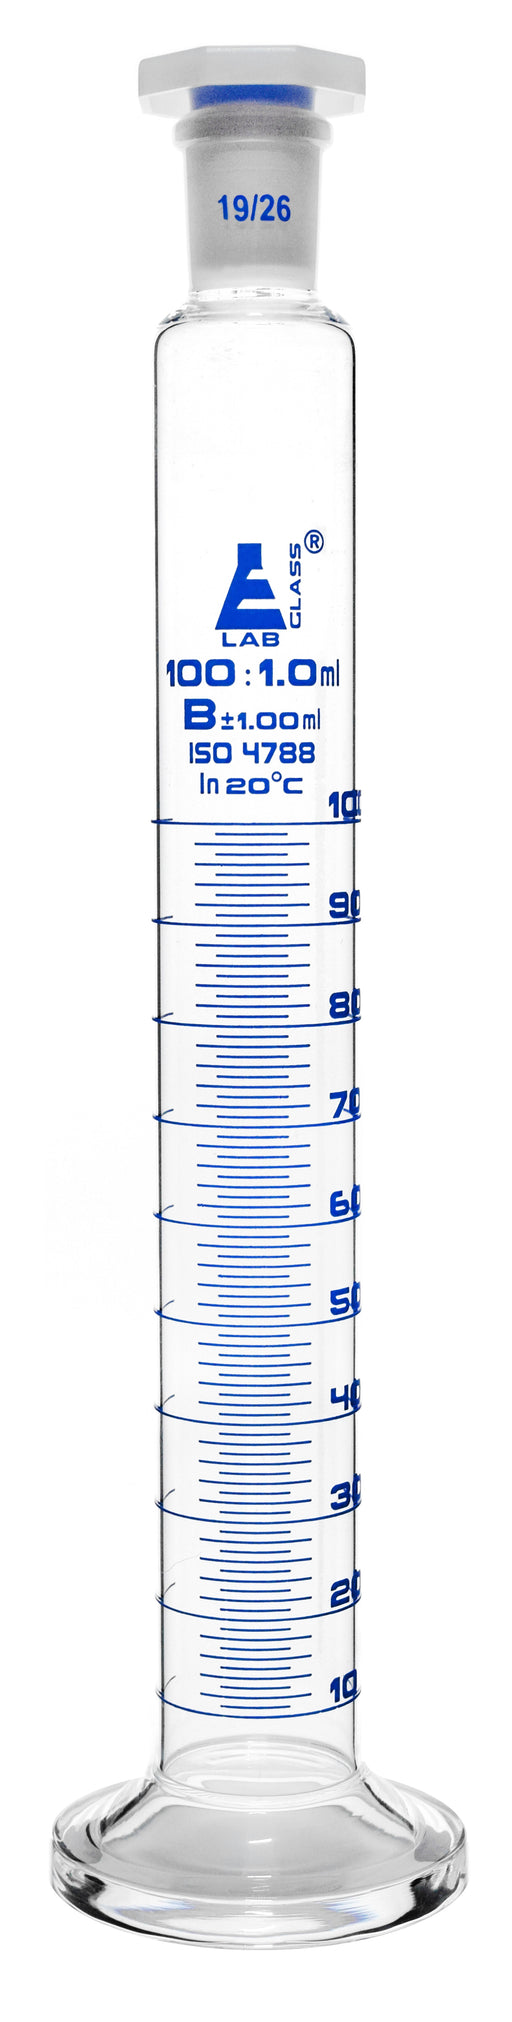 Cylinder Measuring Graduated with Stopper, Class 'B'-100ml